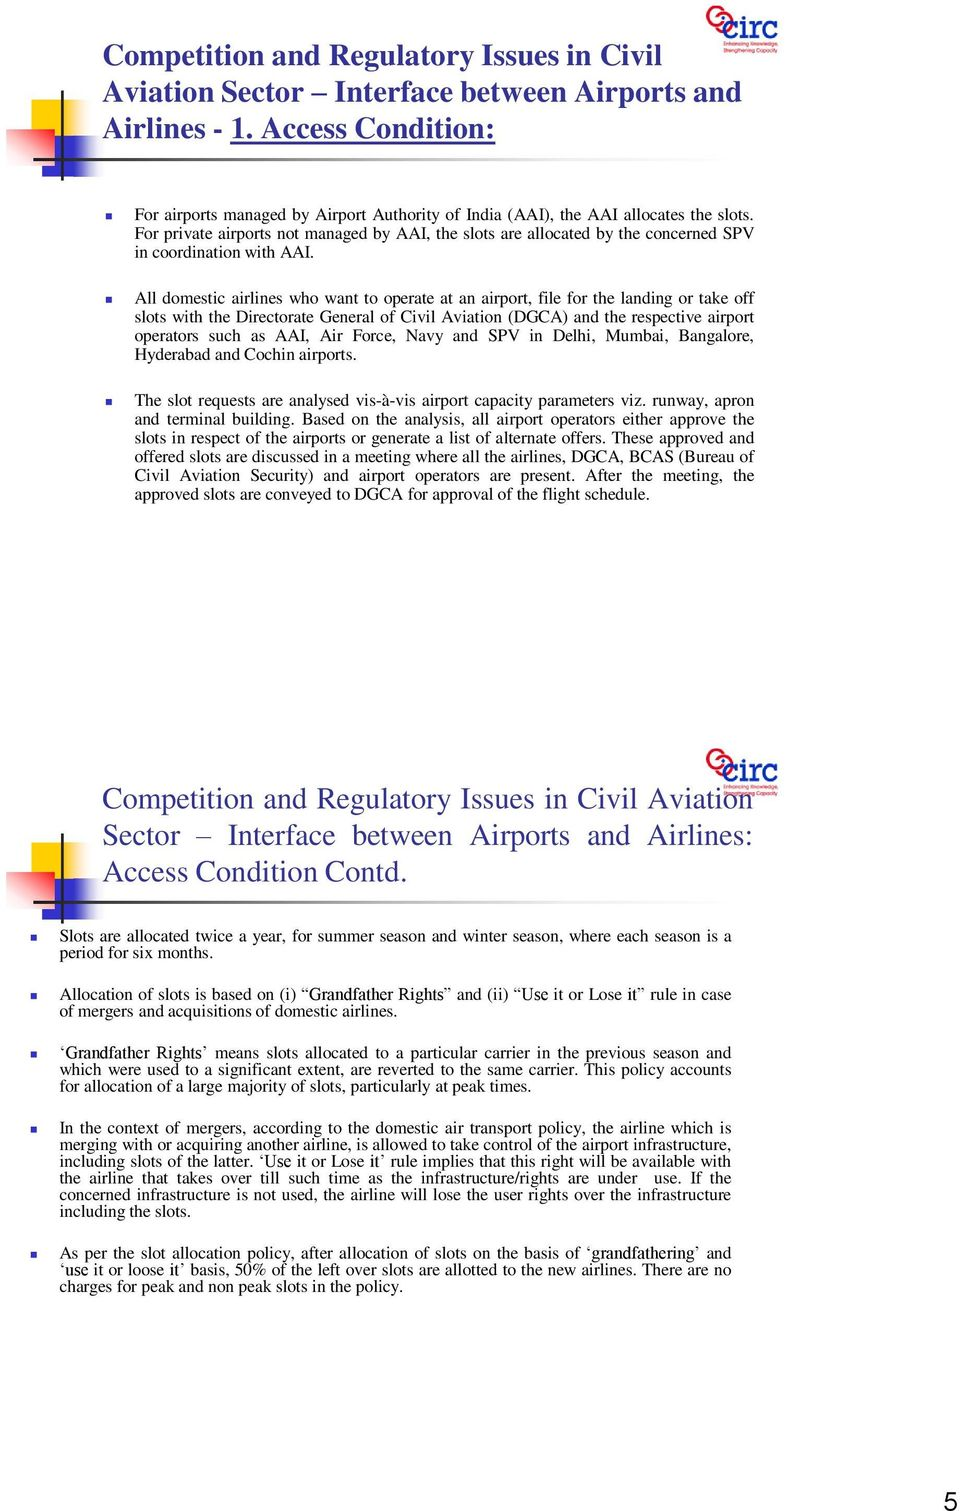 For private airports not managed by AAI, the slots are allocated by the concerned SPV in coordination with AAI.